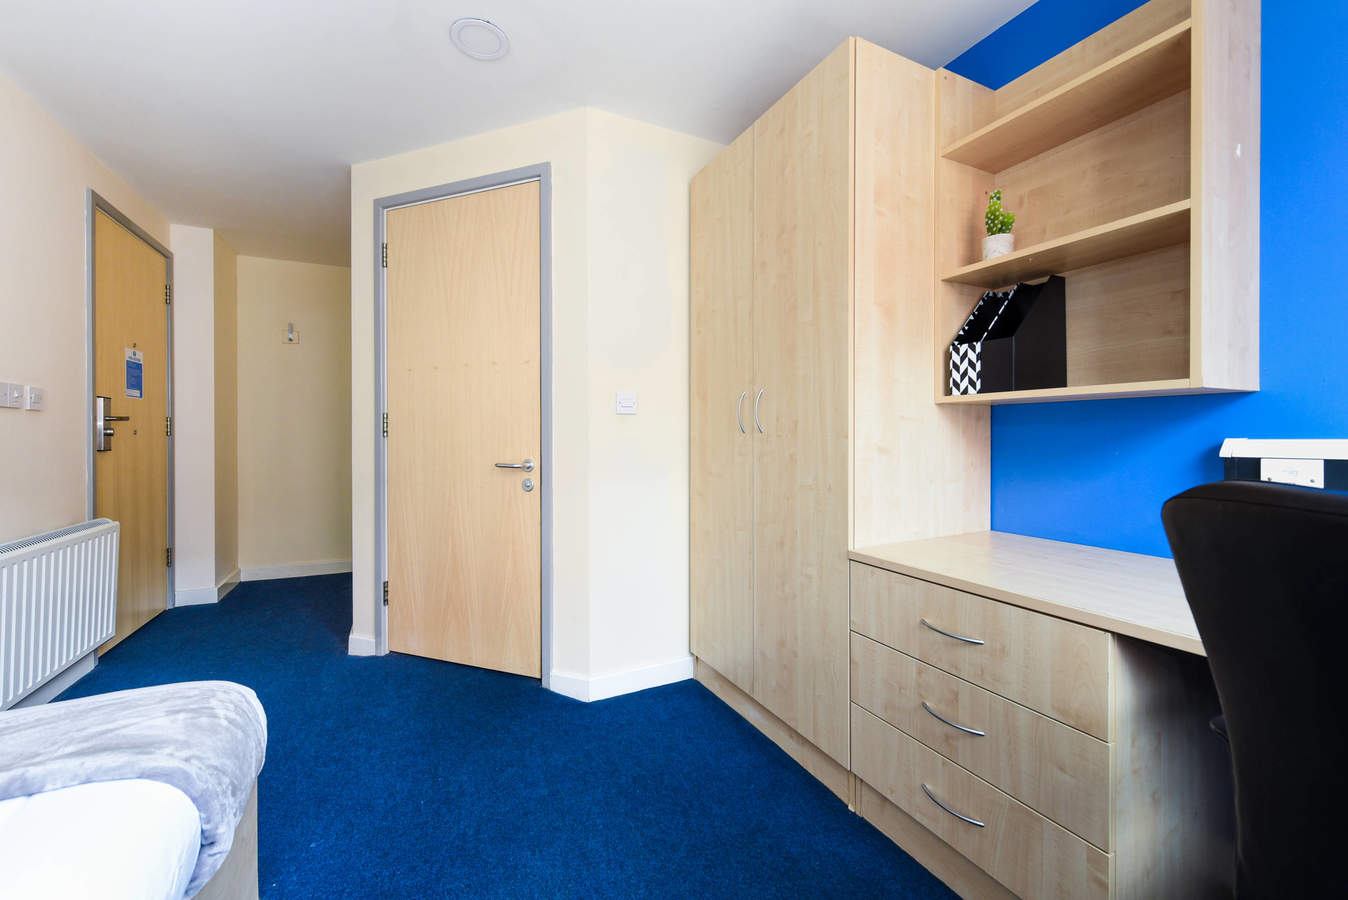 Sheffield_-_sheffield_3_-_ensuite_a-6_converted